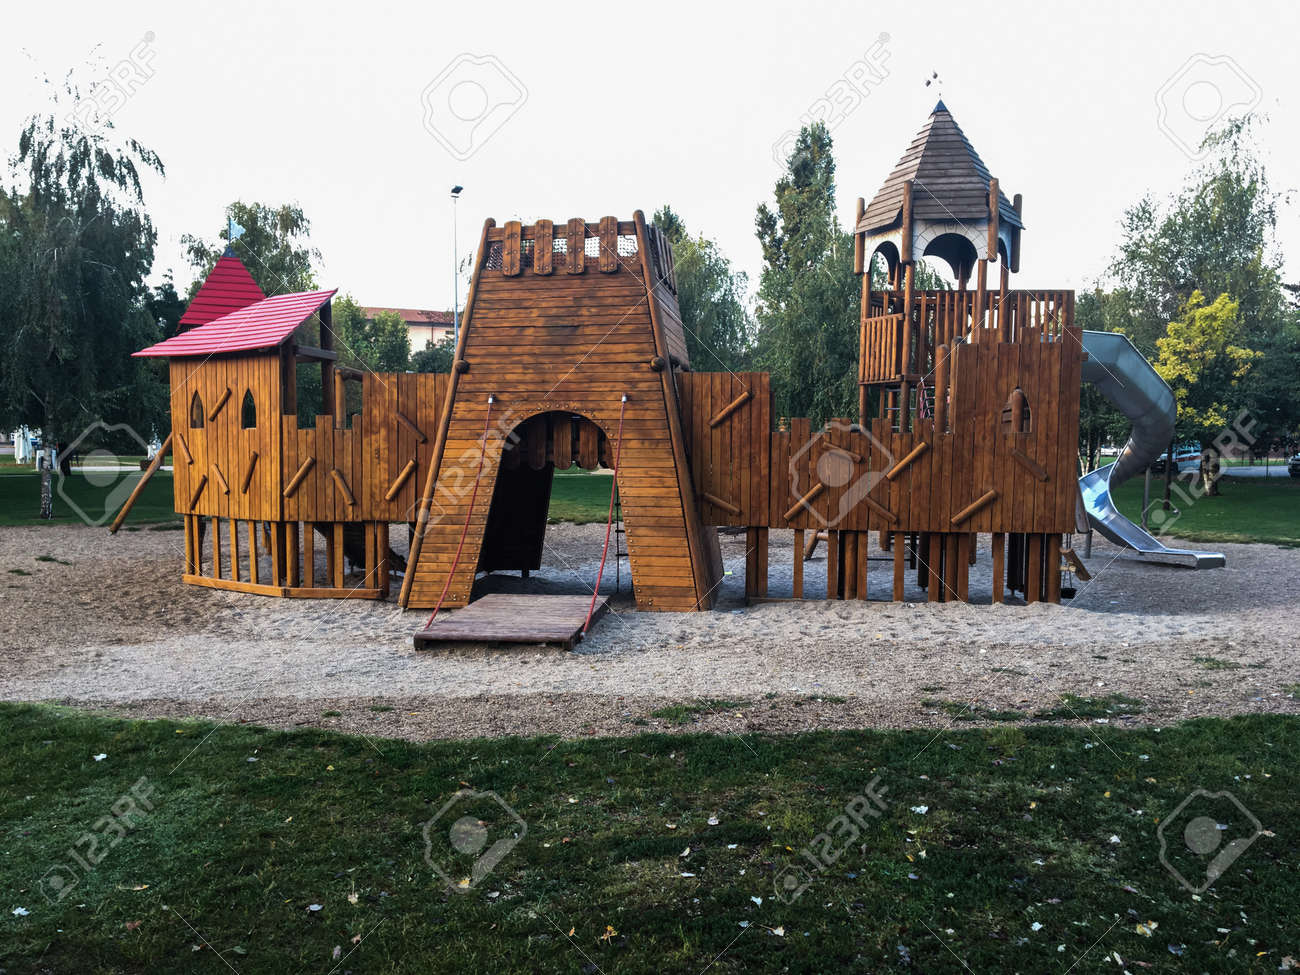 Wooden Playground For Children In The Public Park Surrounded